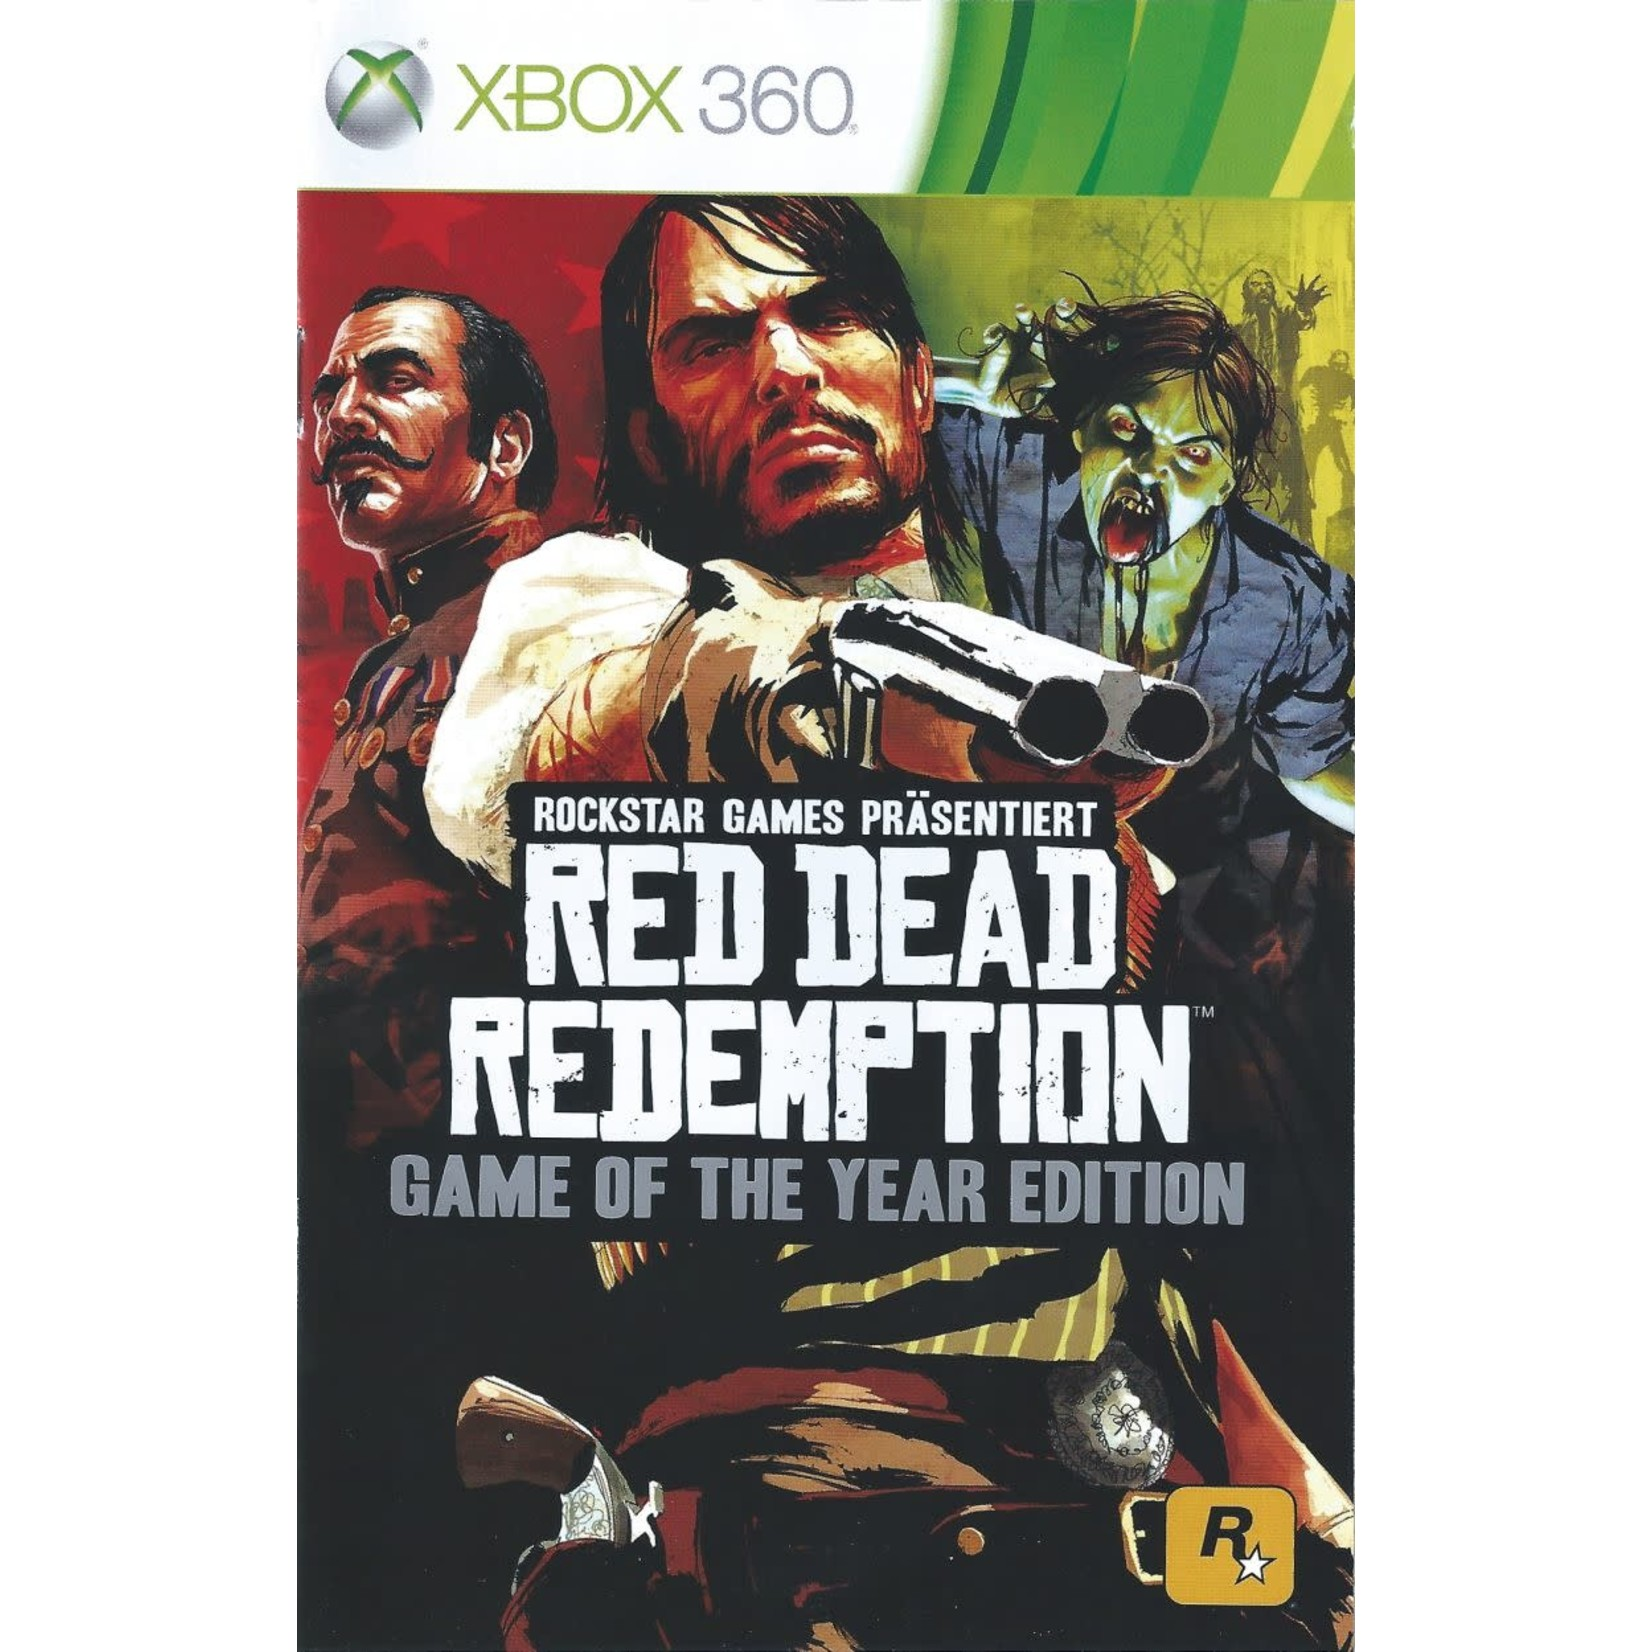 xb360-Red Dead Redemption: Game of the Year Edition